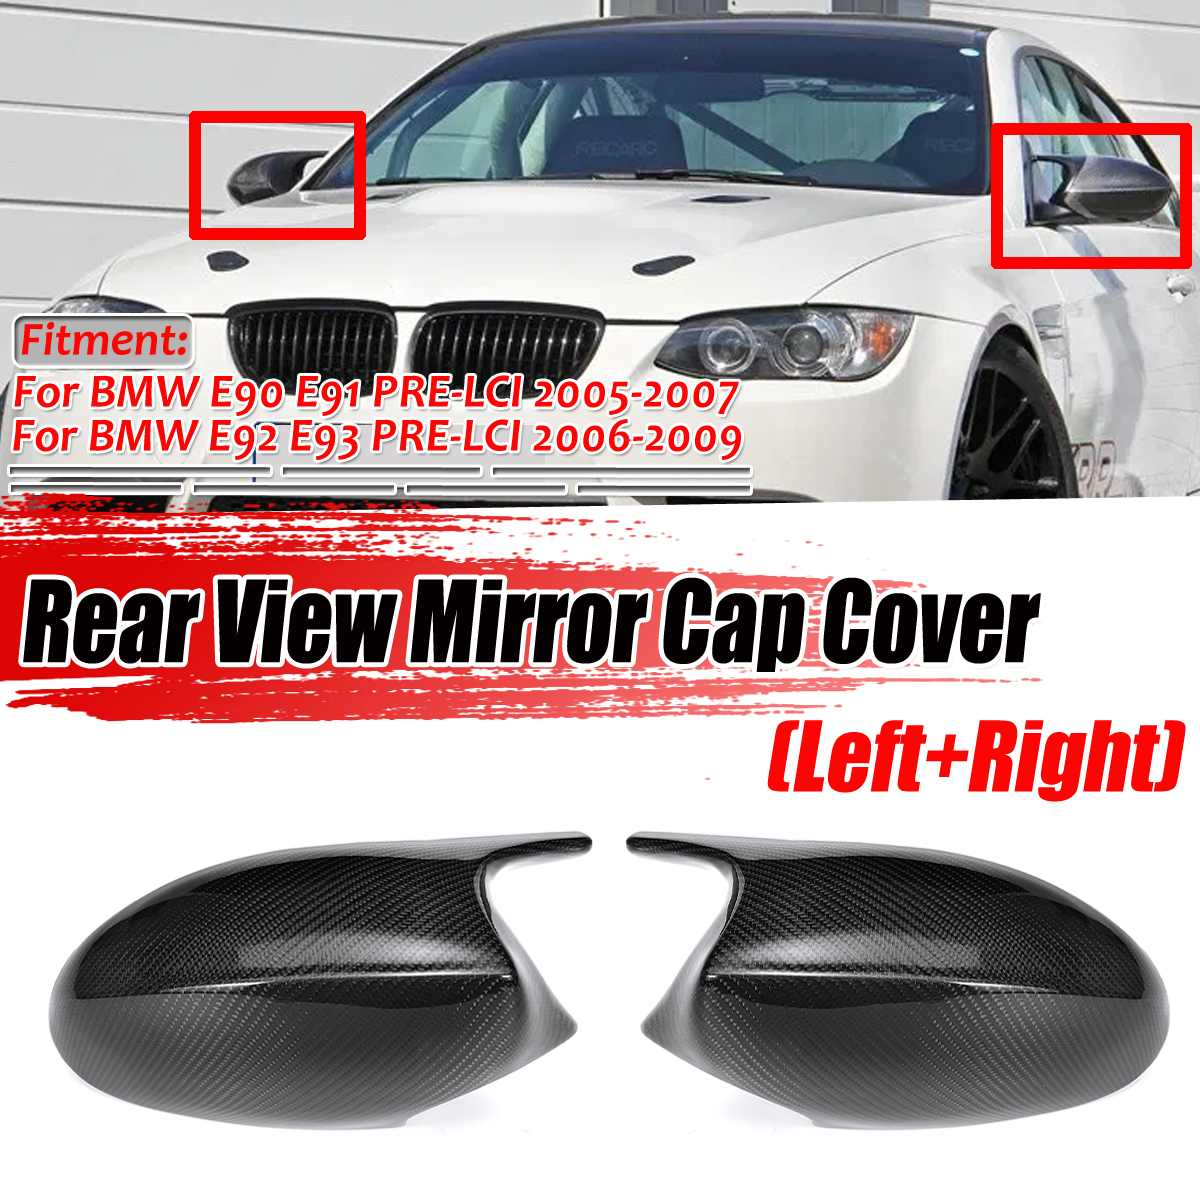 2pc M3 Style Real Carbon Fiber Side Door Rear View E90 Mirror Cover Caps For BMW E90 E91 2005-2007 E92 E93 2006-2009 E81 E82 E88 image